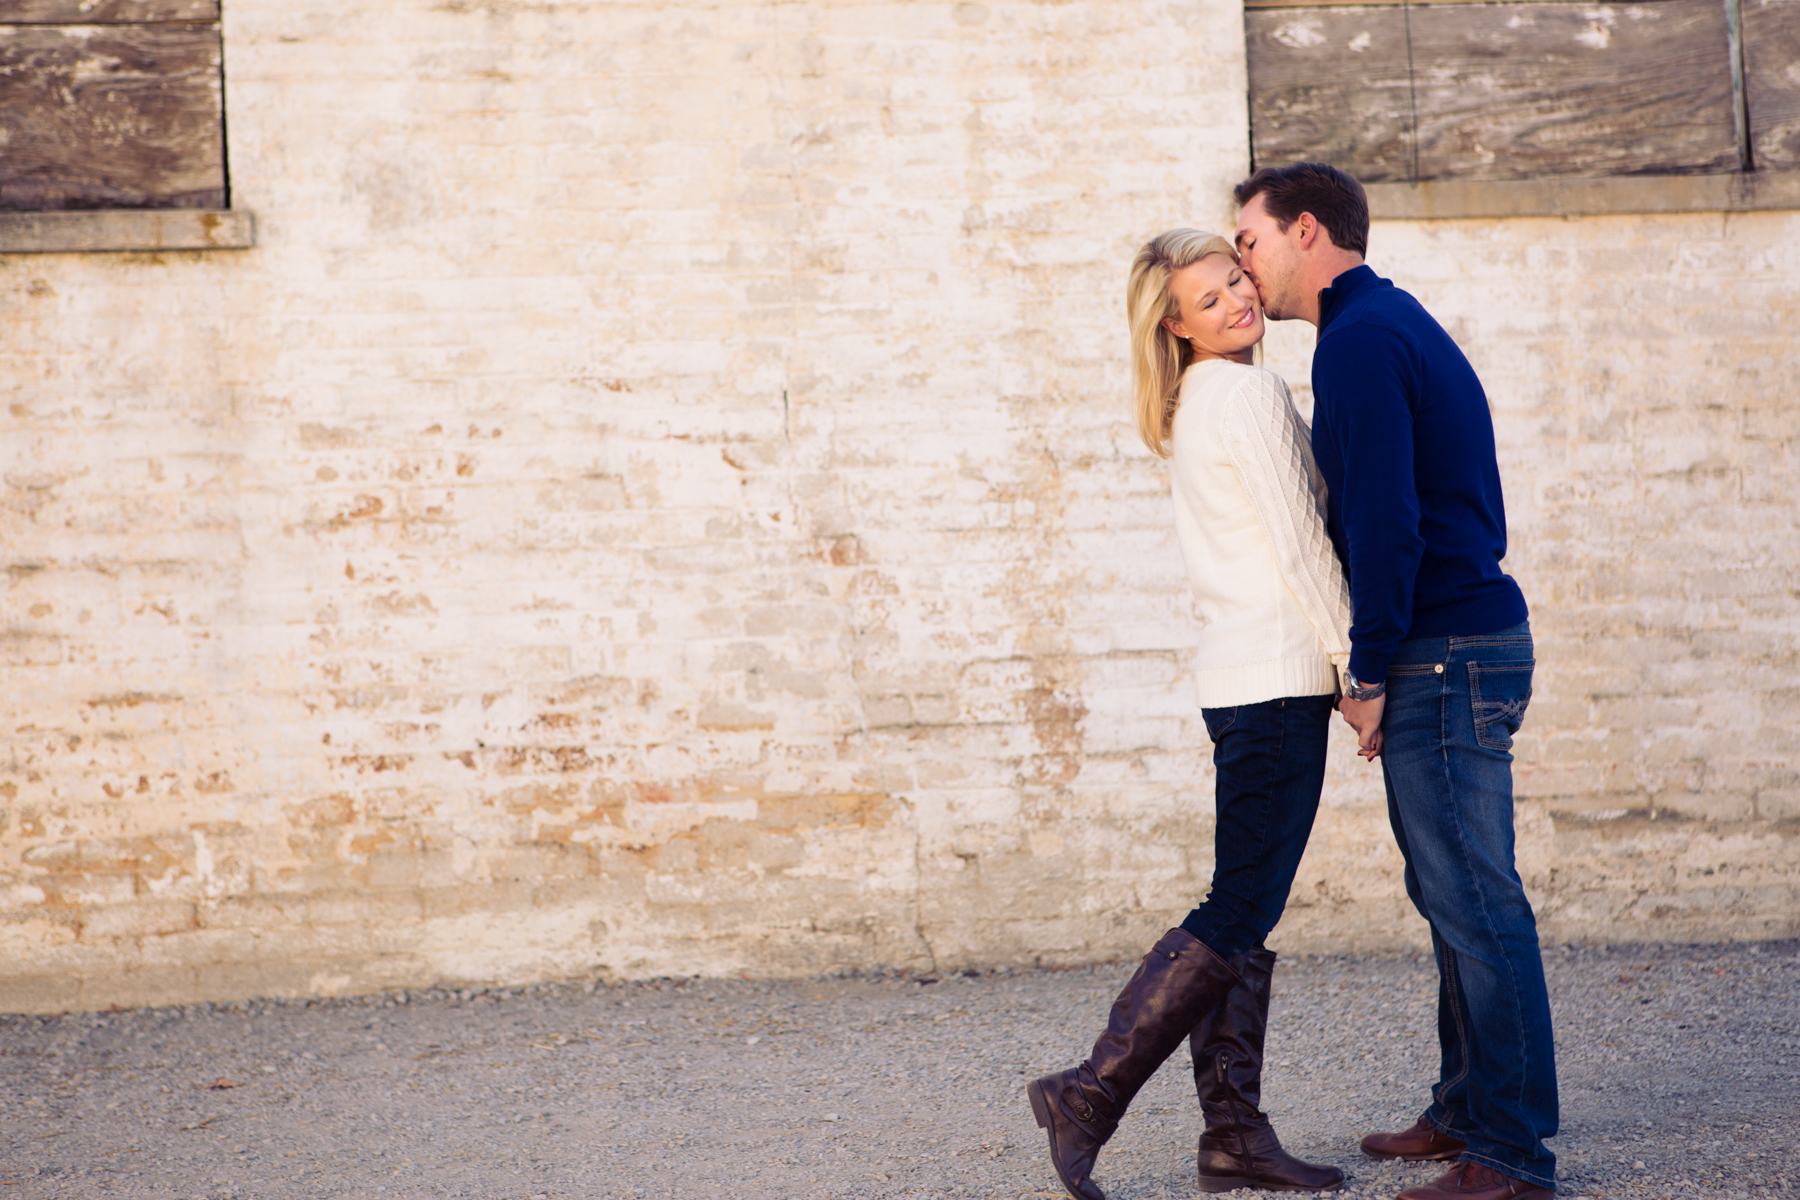 Couples Session$325 - Up to 2 hour sessionOutfit ChangePassword Protected Online GalleryUp to 150 images from your sessionEdited digital Negatives with Printing ReleasePassword Protected Online Gallery